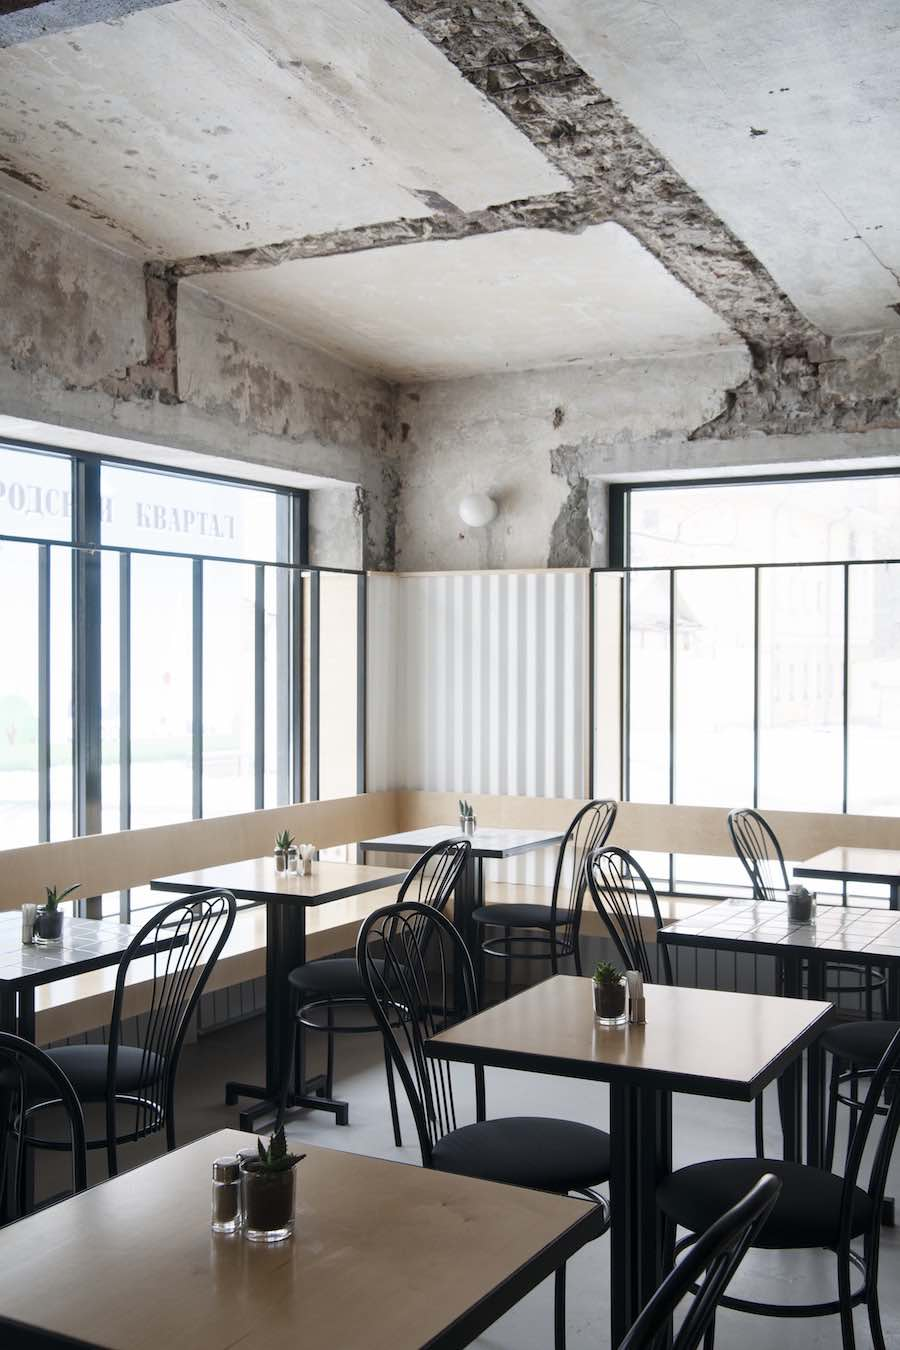 Dizengoff 99 restaurant in Moscow - Photo by Crosby Studios